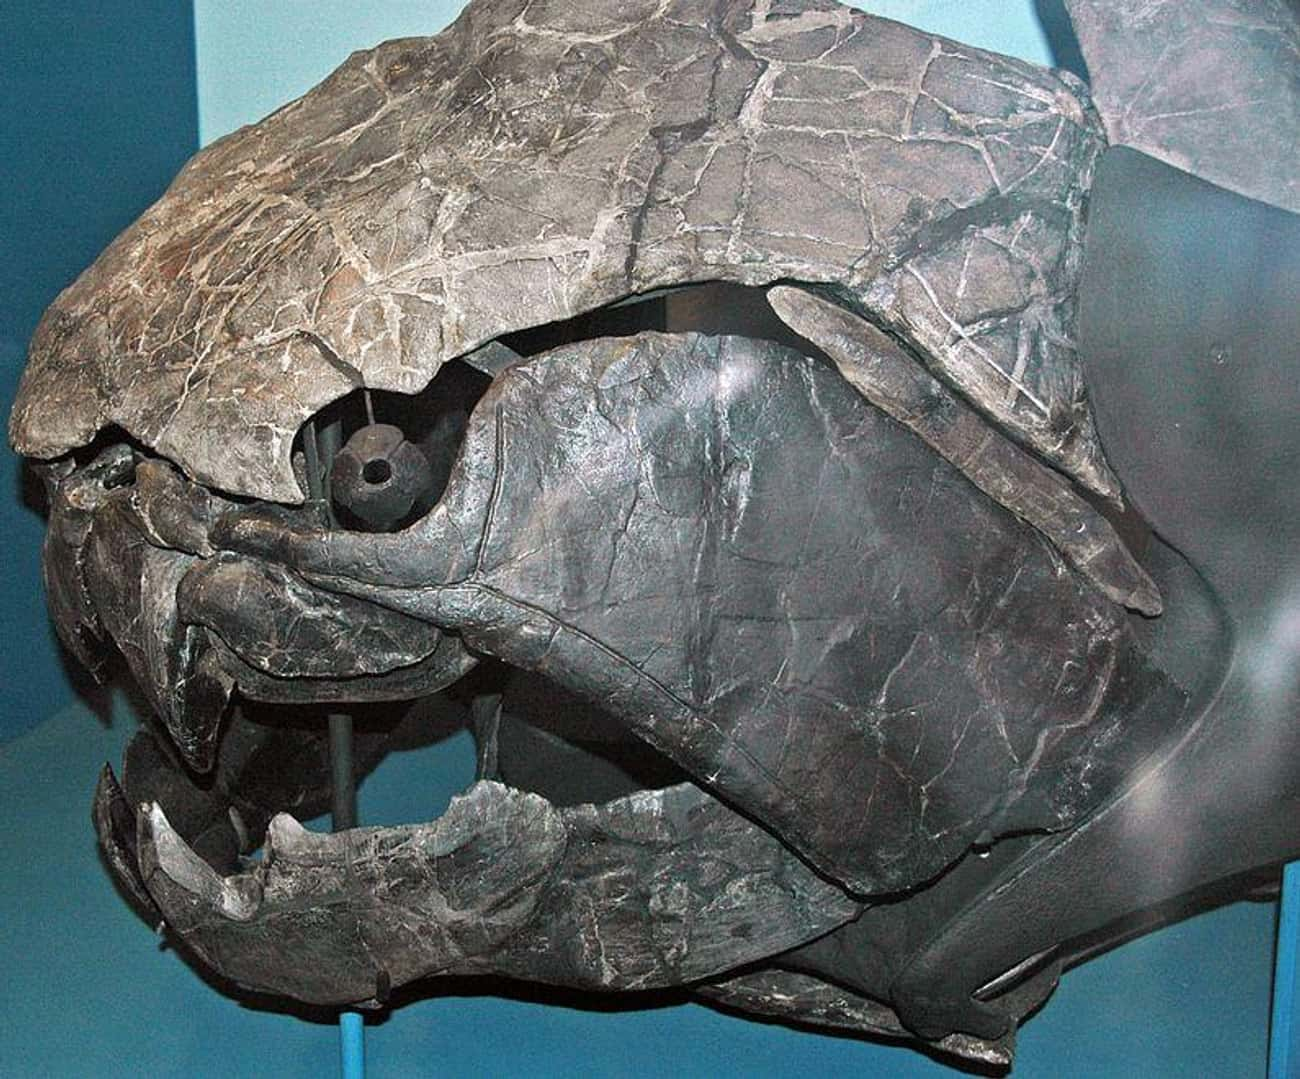 Dunkleosteus, An Armored Death is listed (or ranked) 1 on the list The Most Horrifying Sea Monsters To Ever Terrorize The Ocean